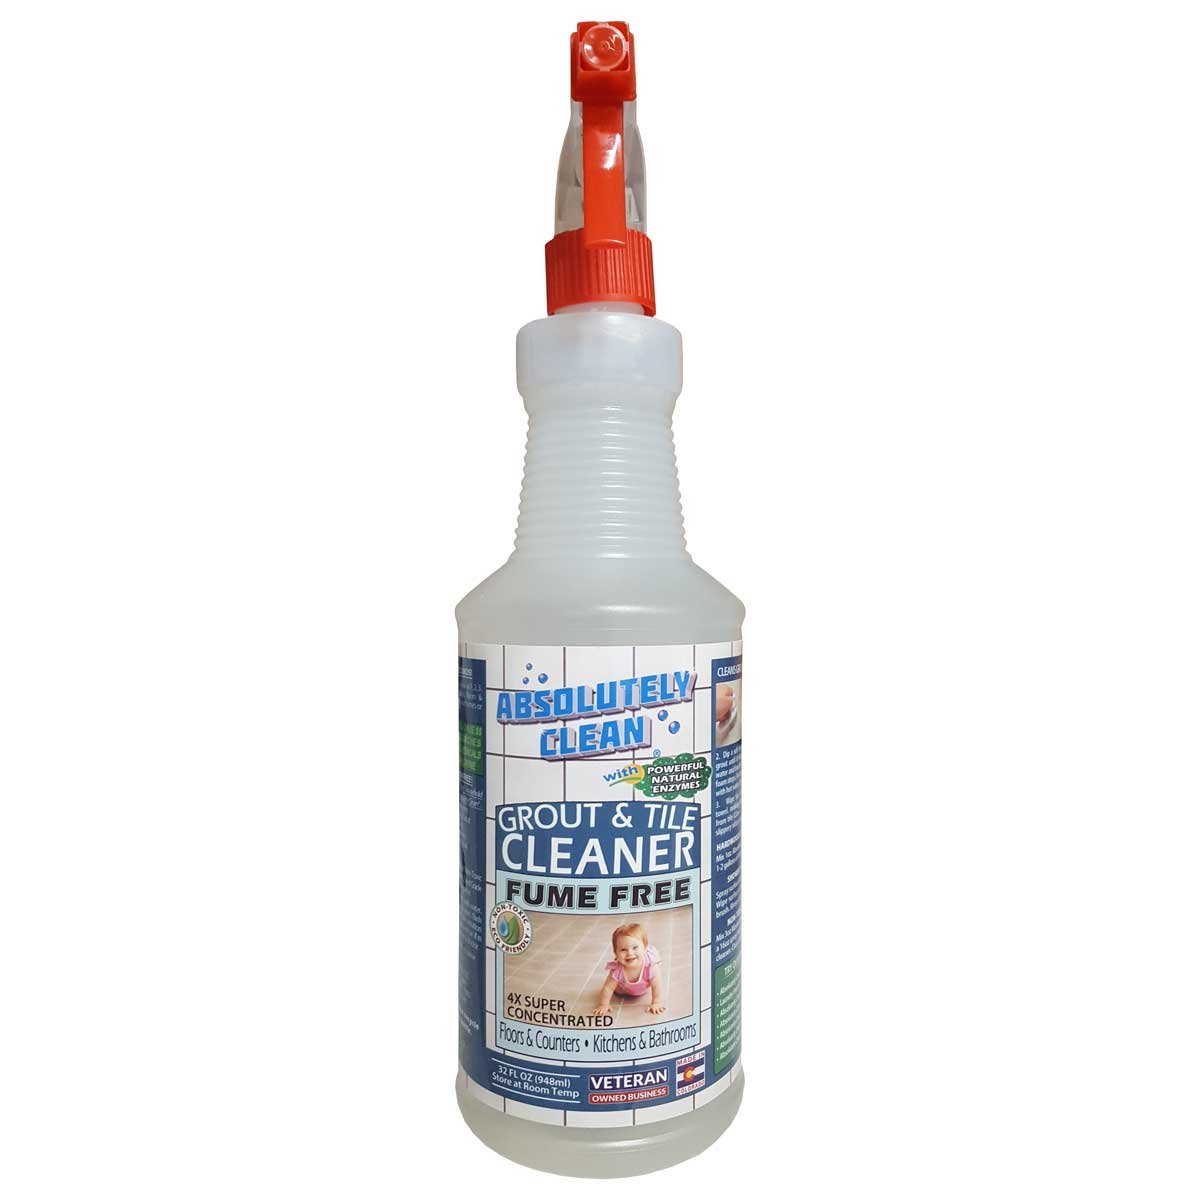 AMAZING GROUT CLEANER, PROFESSIONAL STRENGTH, FUME FREE: Natural Enzymes Clean the Dirtiest Grout Quickly & Easily, Best Grout Cleaner For Tile and Grout, Floors, Bathrooms, Counters, USA MADE